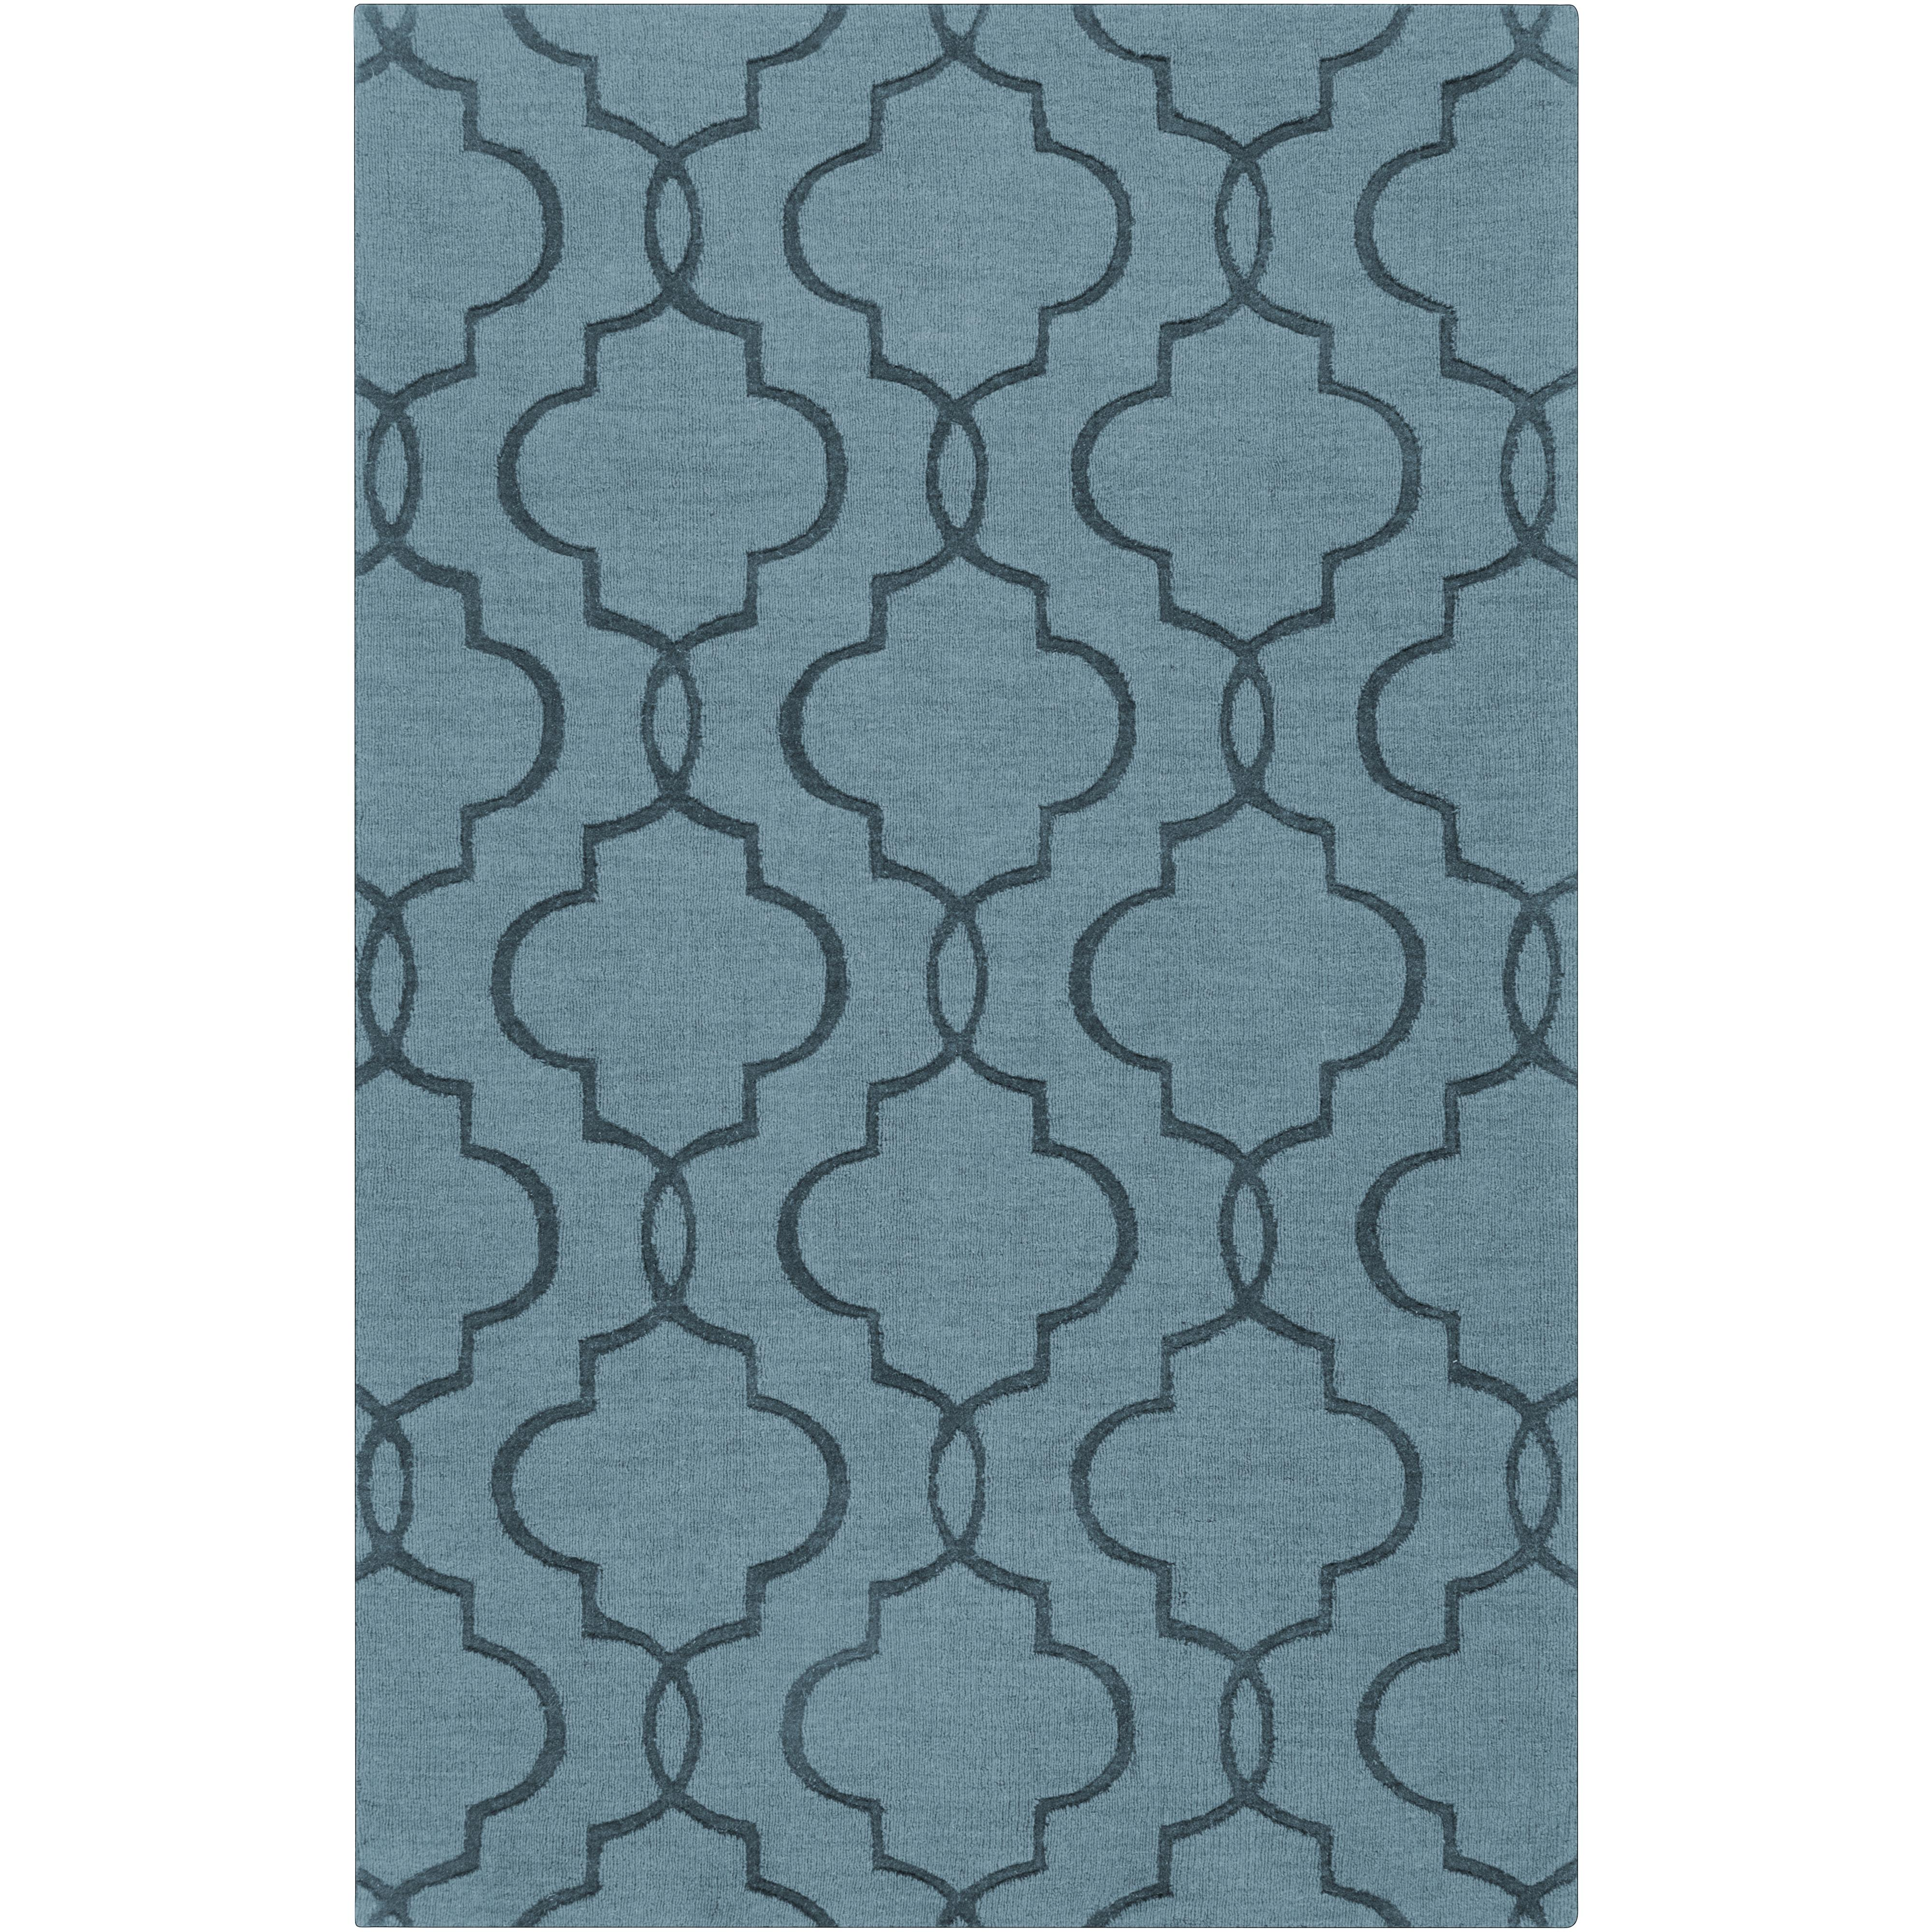 Surya Mystique 5' x 8' - Item Number: M5181-58